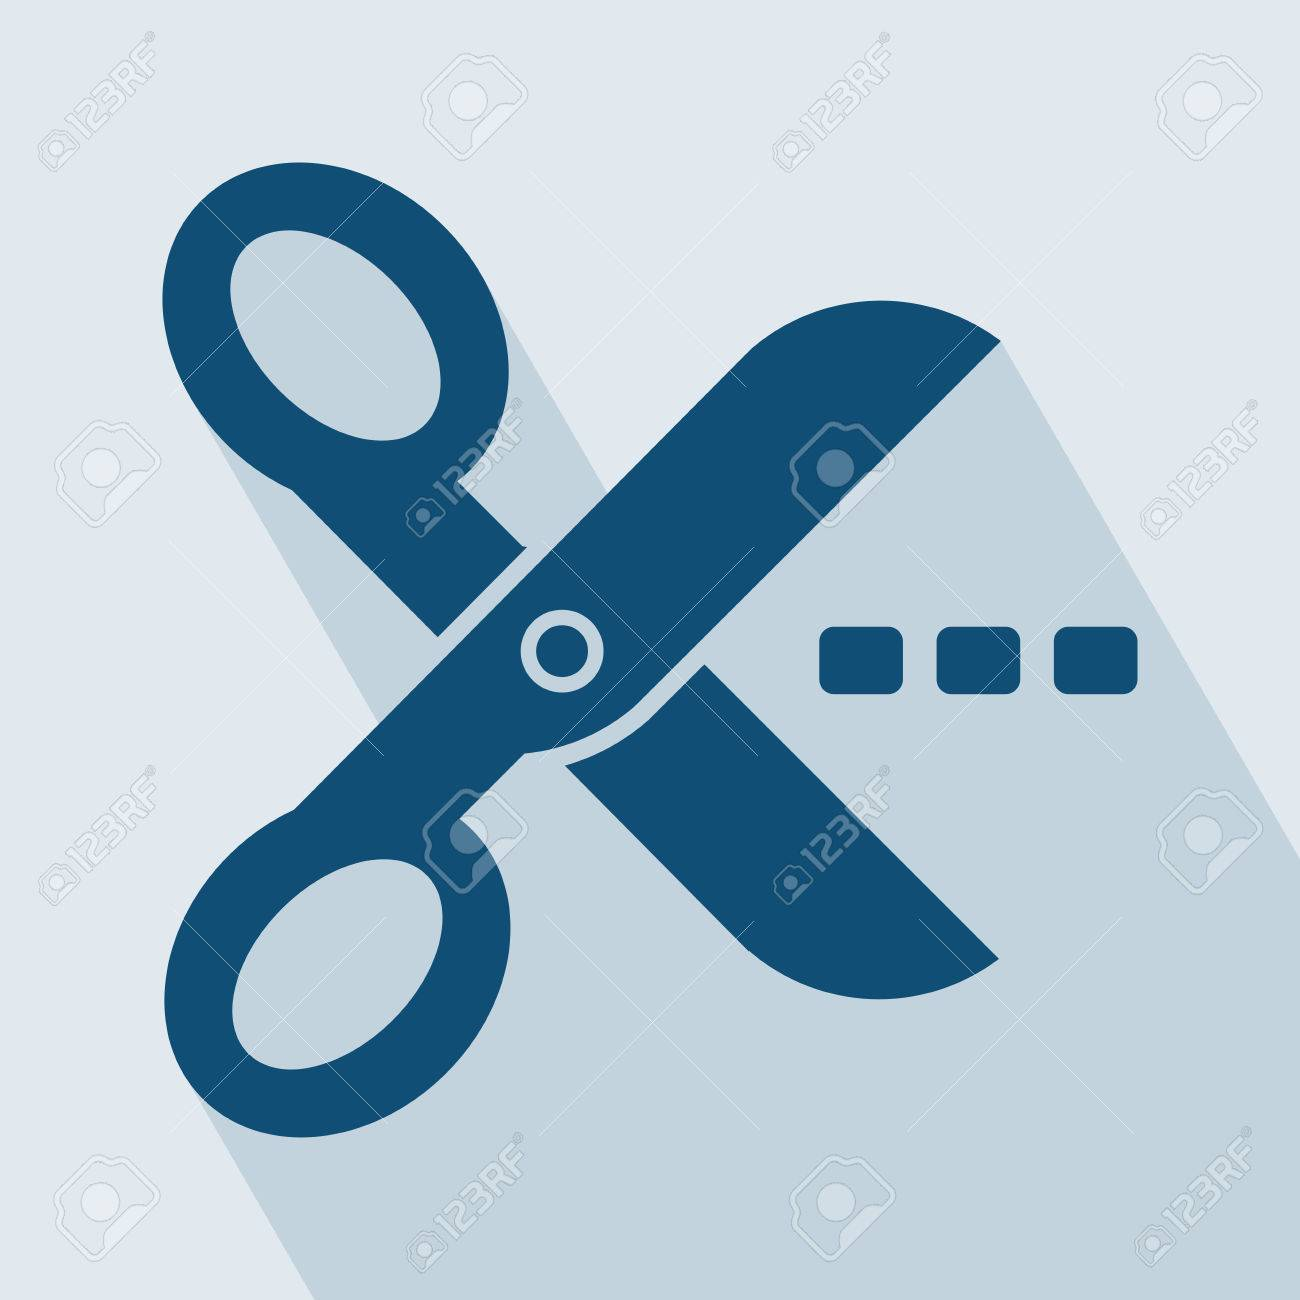 Scissors icon cut icon scissors symbol royalty free cliparts scissors icon cut icon scissors symbol stock vector 28515883 biocorpaavc